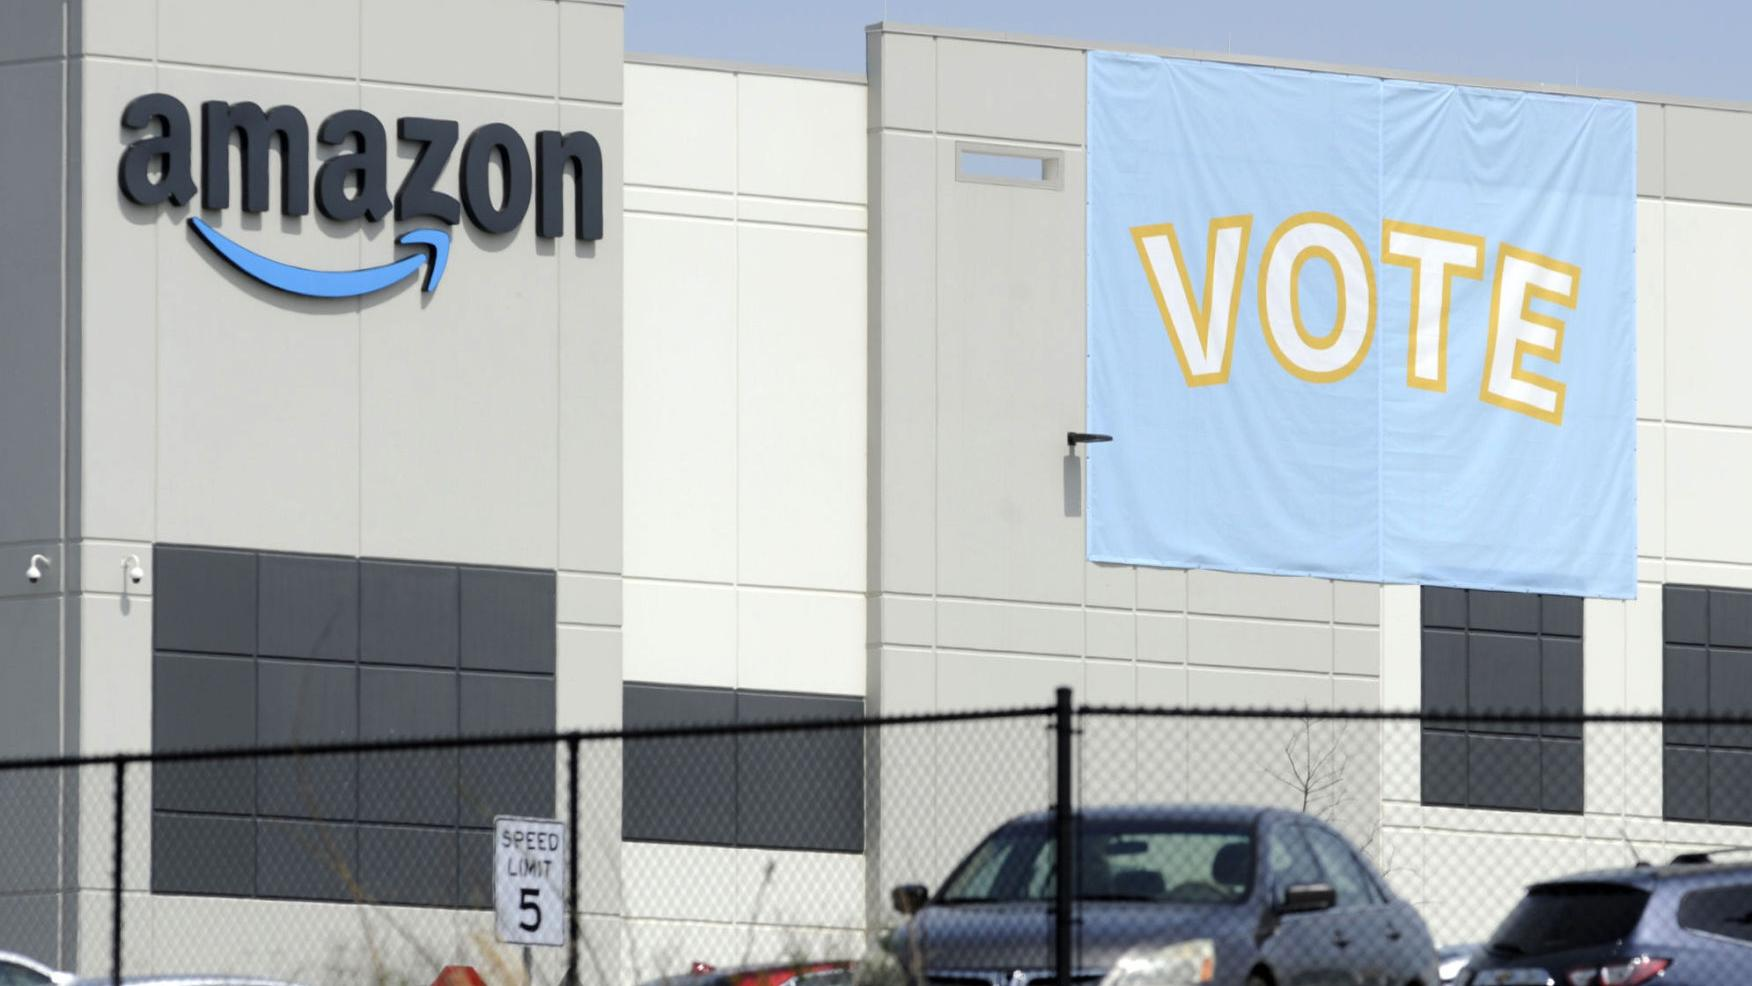 Noah Smith column: Amazon is helping to resurrect the labor movement